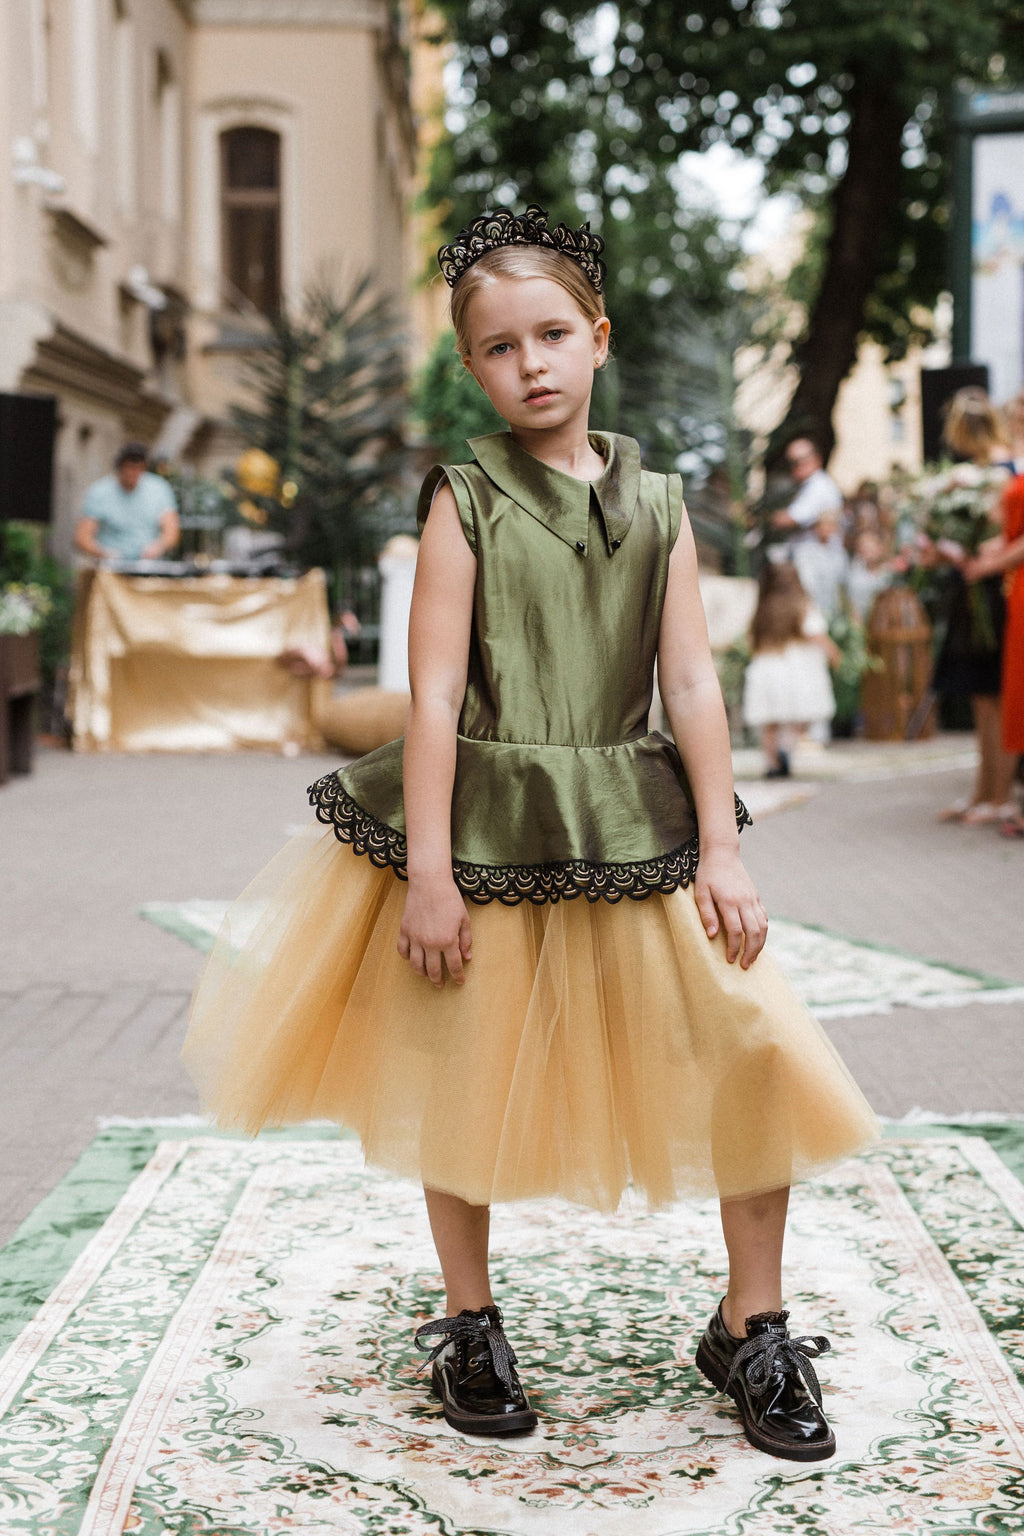 Olive & Gold Taffeta Peplum Girls Tutu Dress with Lace